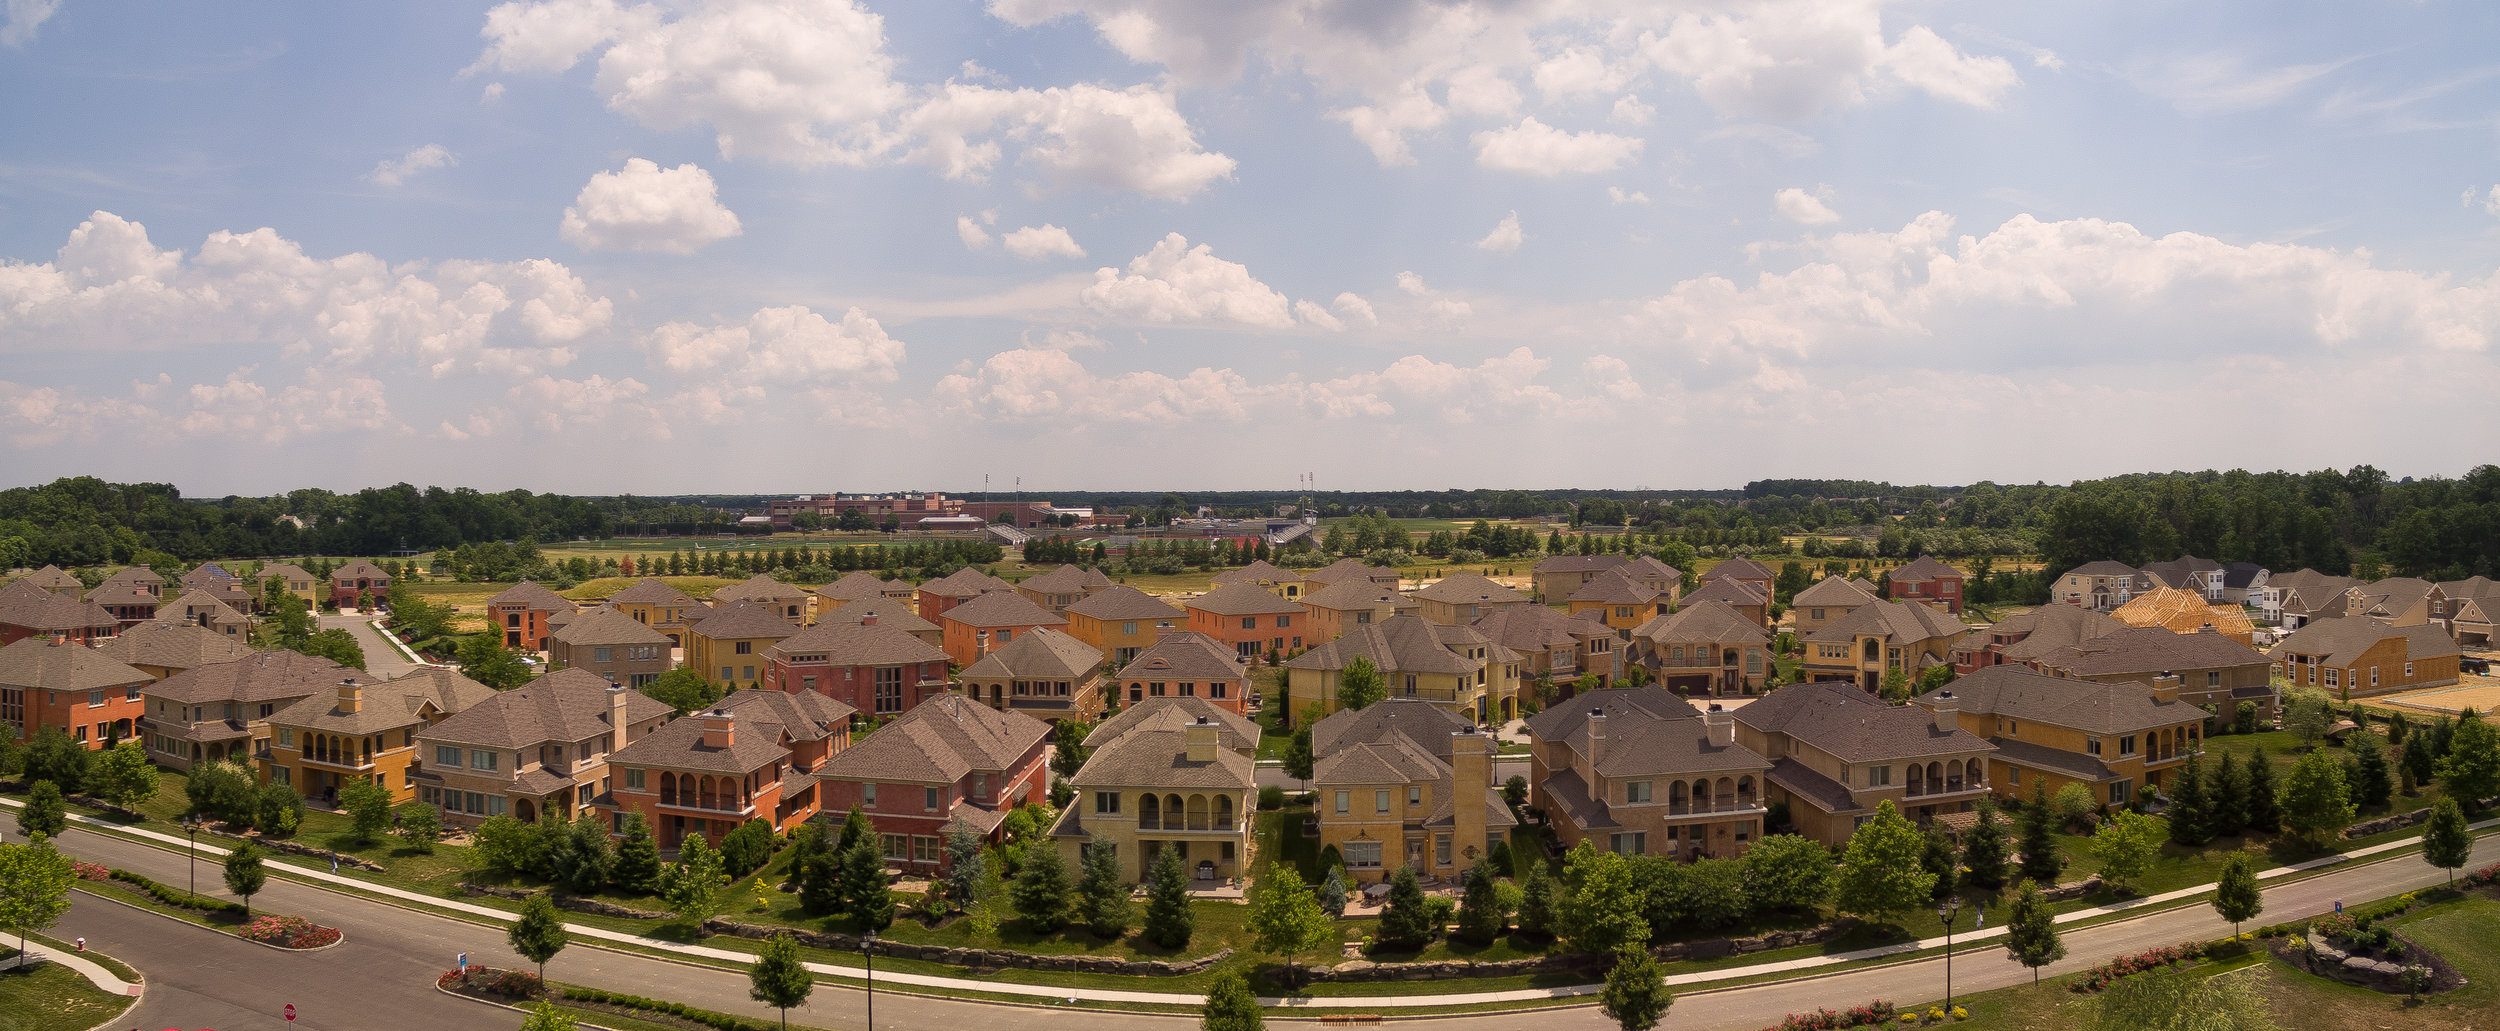 villagio panorama (1 of 1).jpg